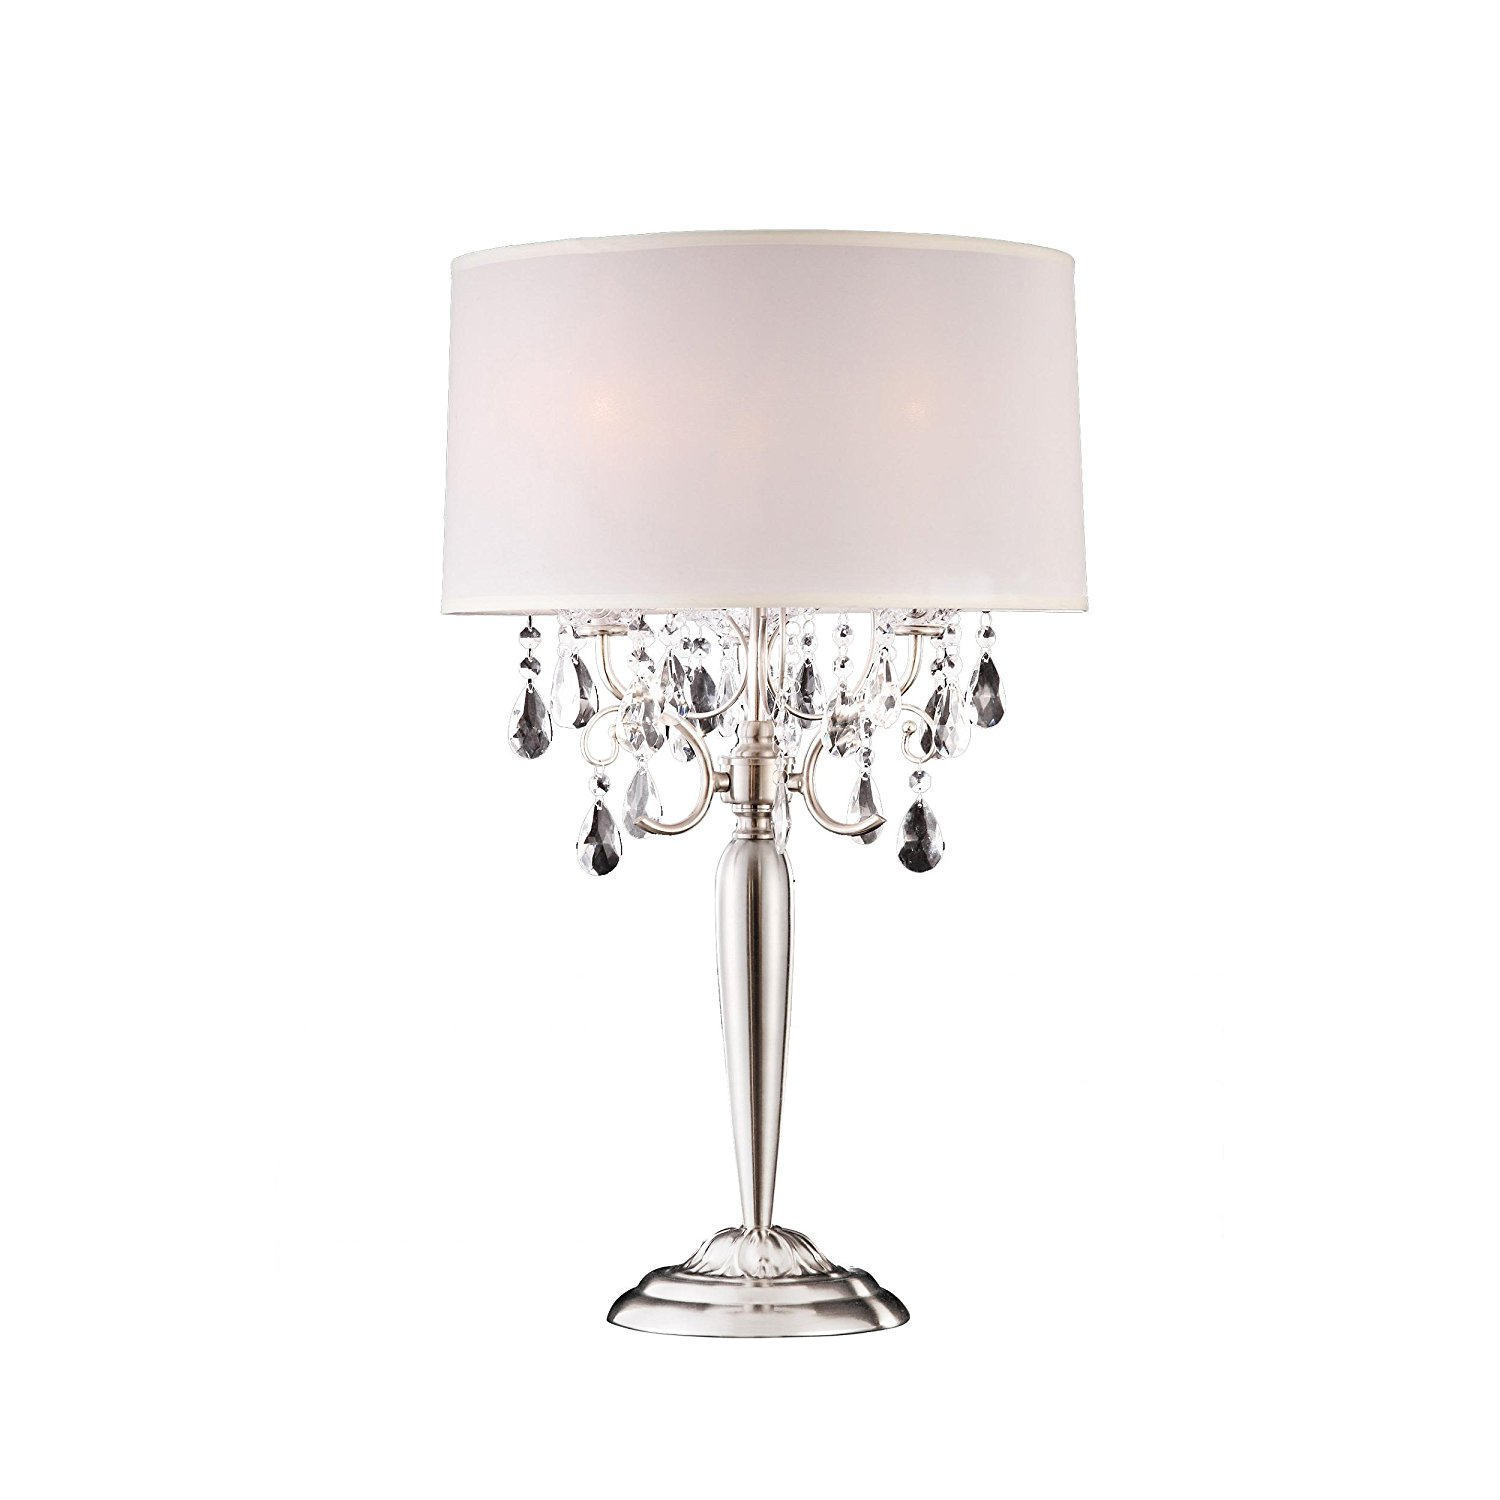 Where to use small crystal table lamps warisan lighting places to use these small crystal table lamps geotapseo Images